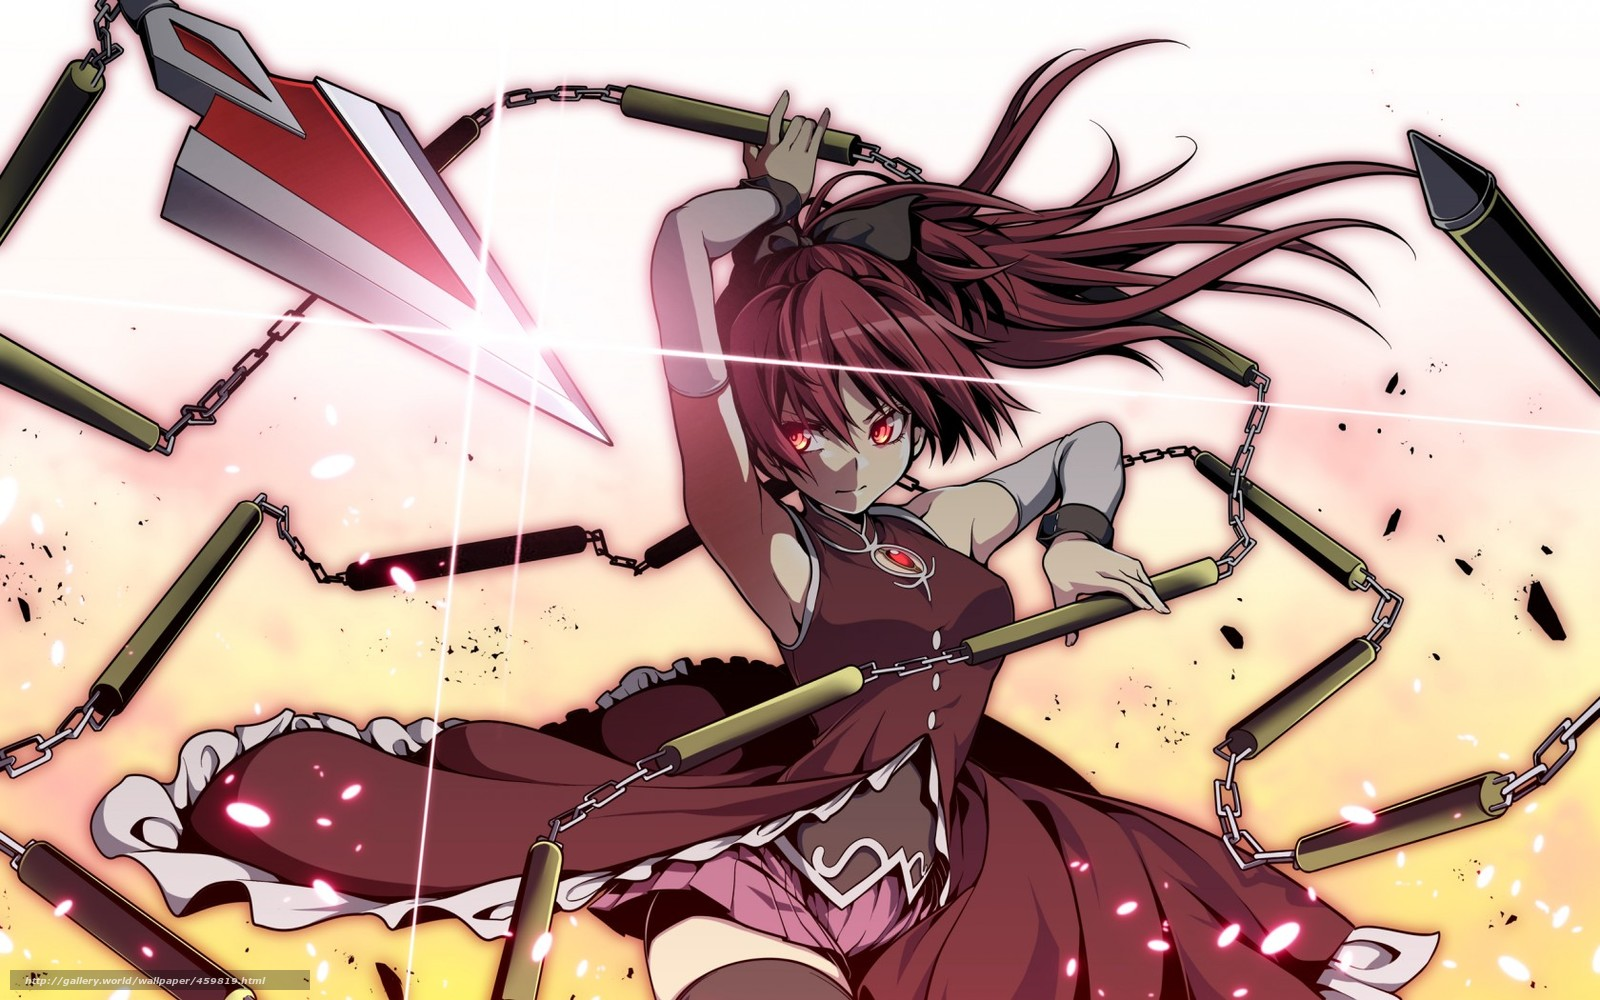 Download wallpaper art girl weapon chain free desktop - Anime girl with weapon ...